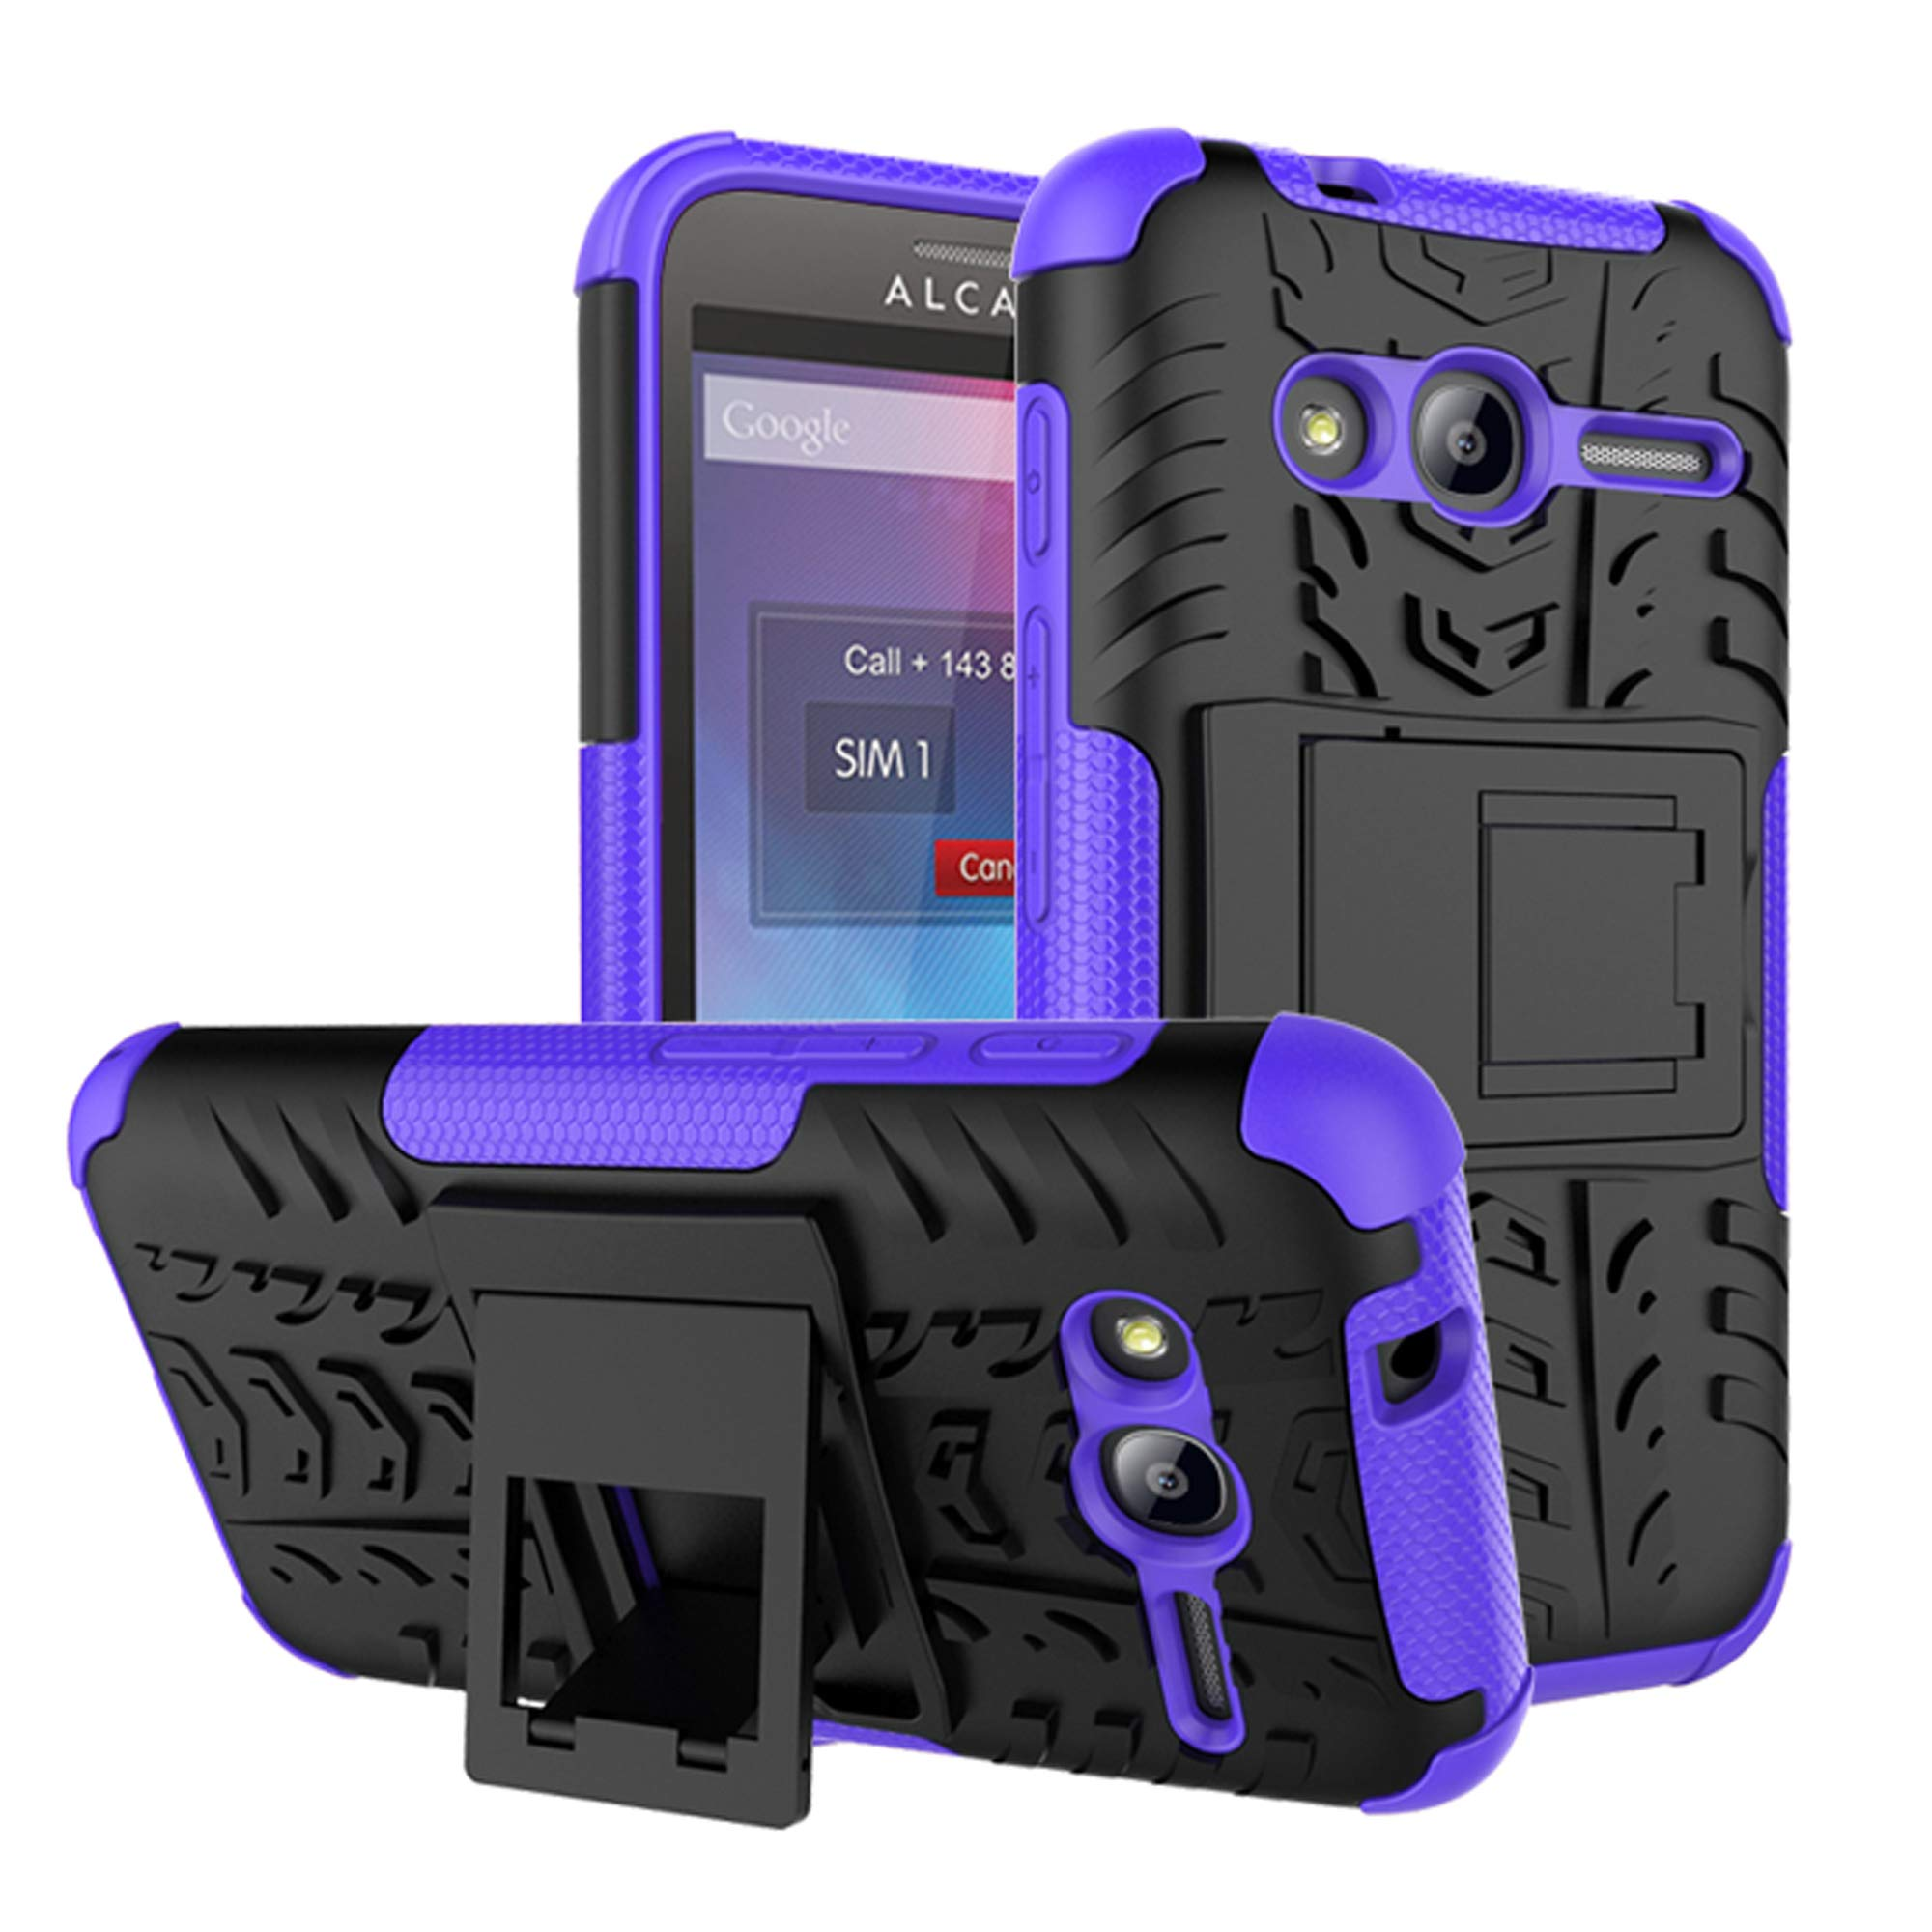 Alcatel U3 3G 4049X Purple Dual Layer Hybrid Tough Rugged Armor Case With Built-in Kickstand & Detachable 2 in 1 Shockproof Phone Case Cover + Screen Protector For Alcatel U3 3G 4049X